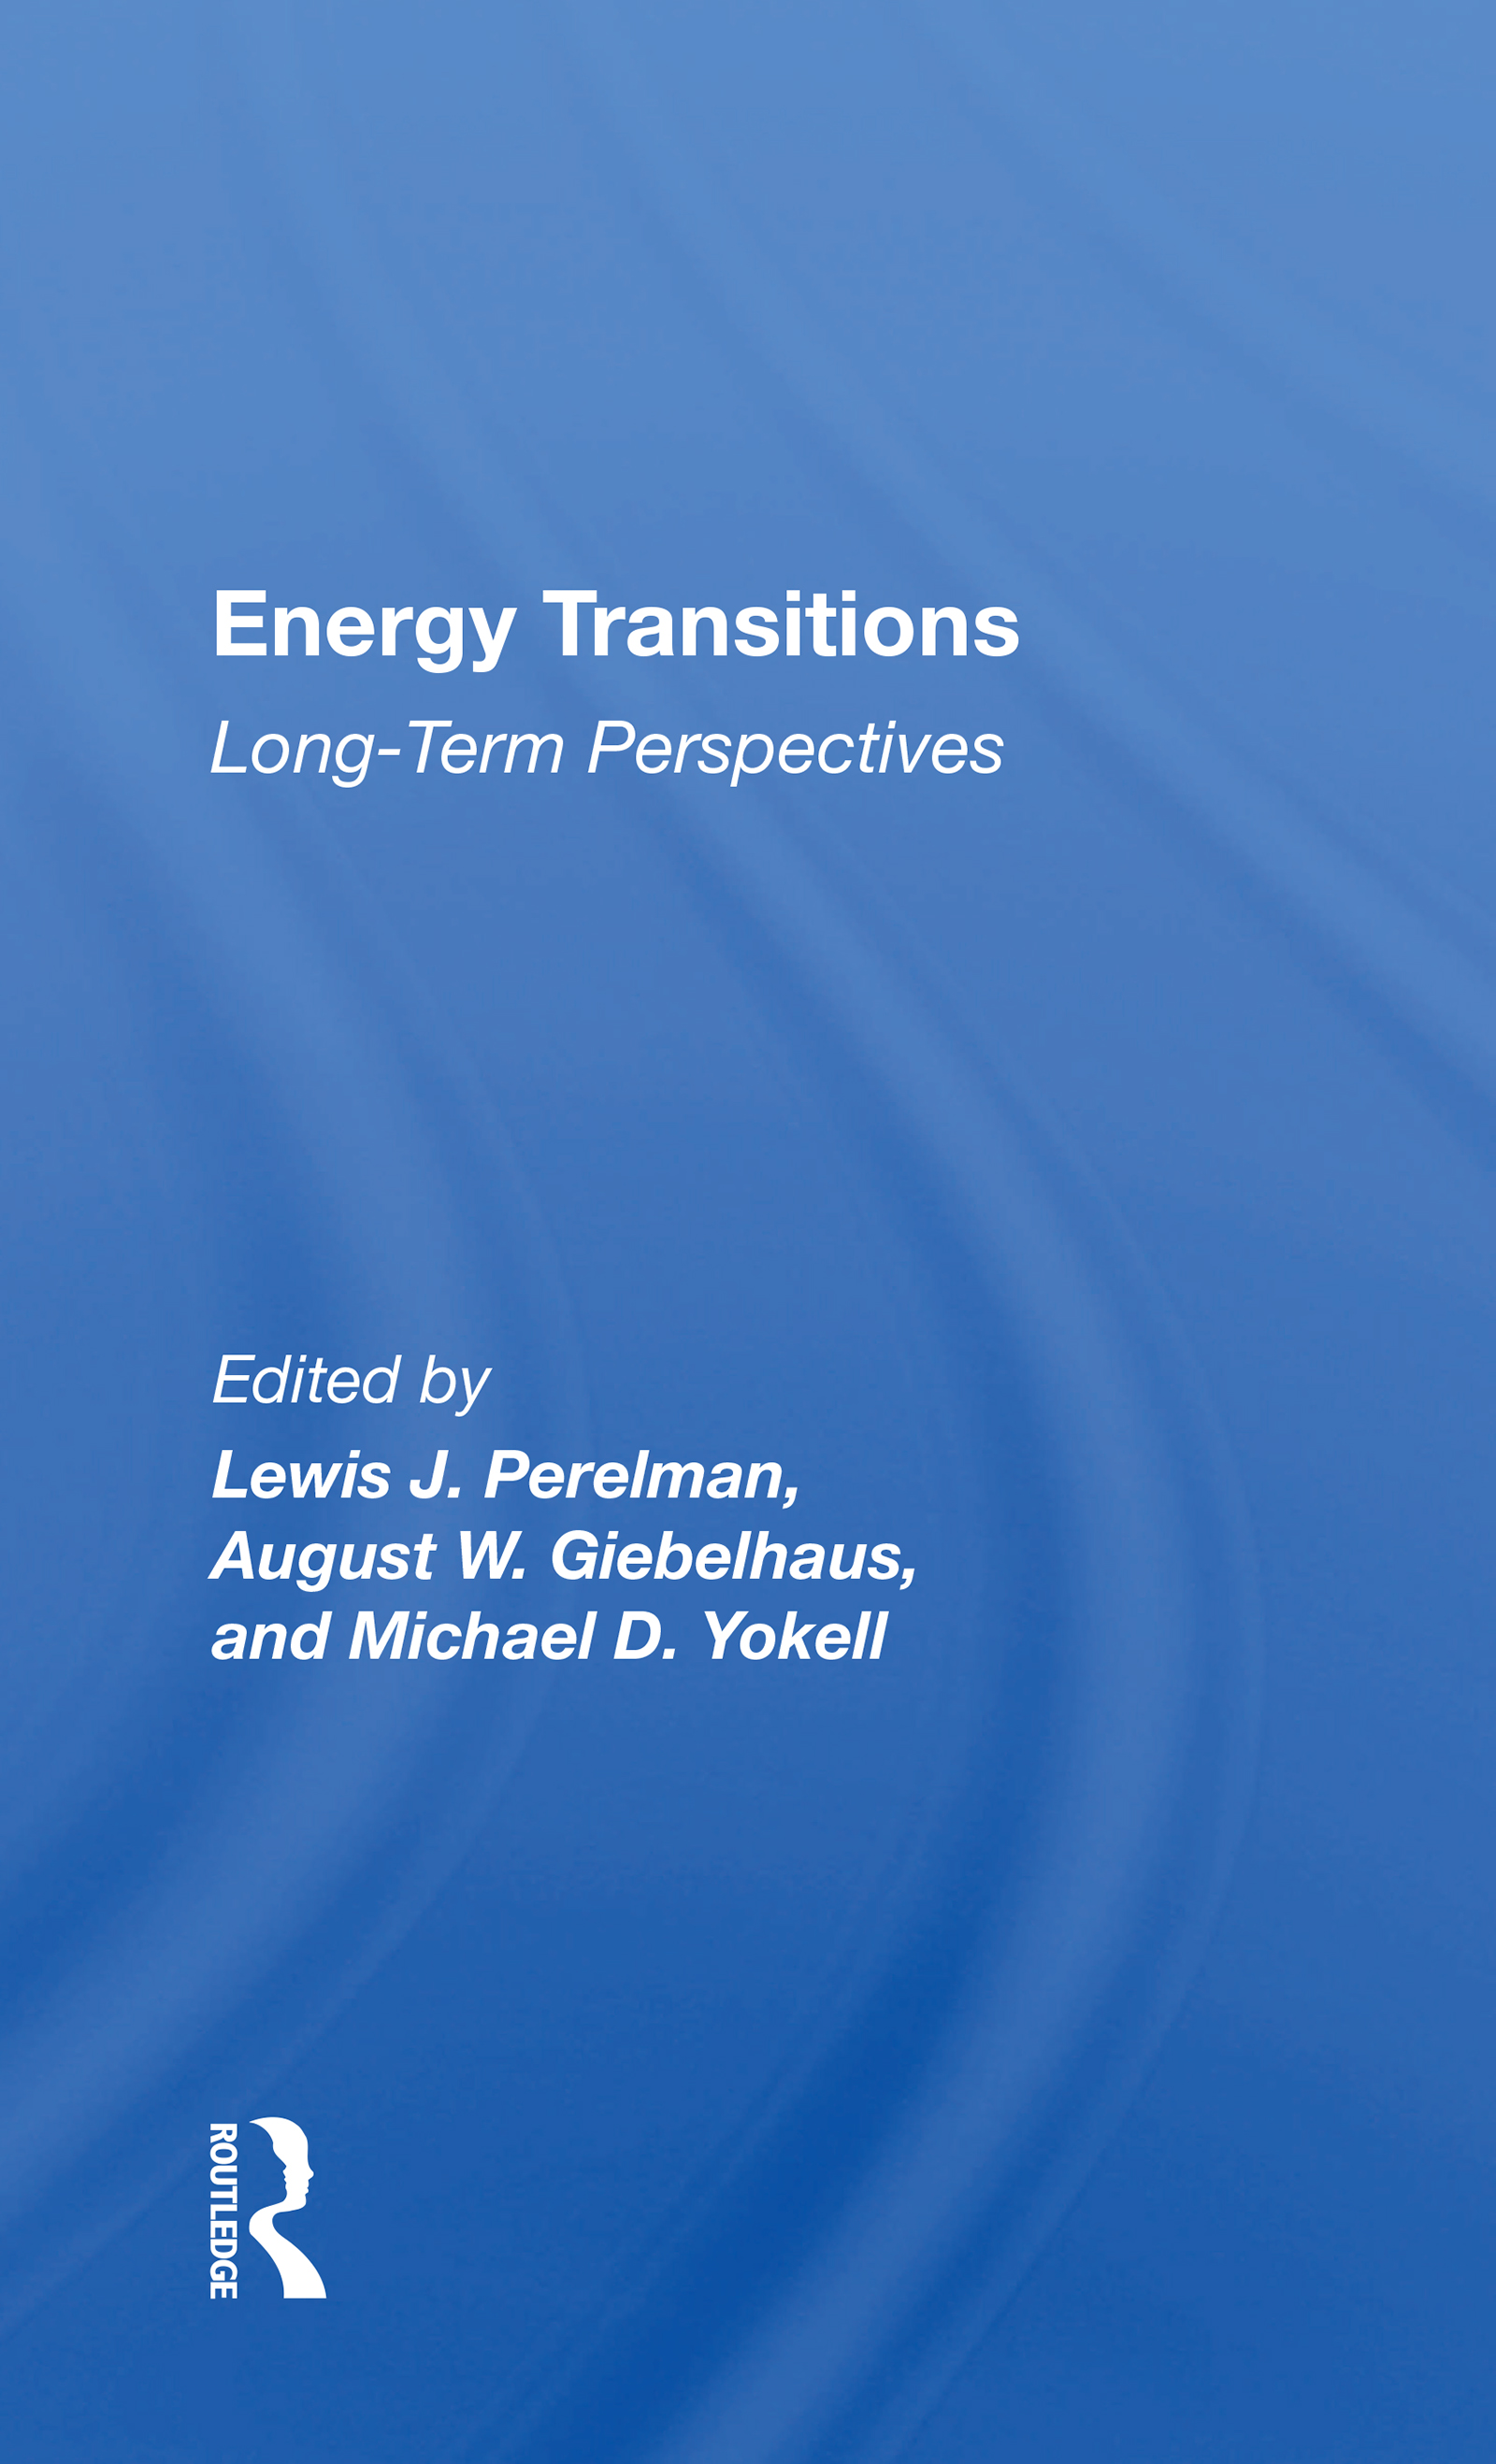 Resistance to Long-Term Energy Transition: The Case of Power Alcohol in the 1930s